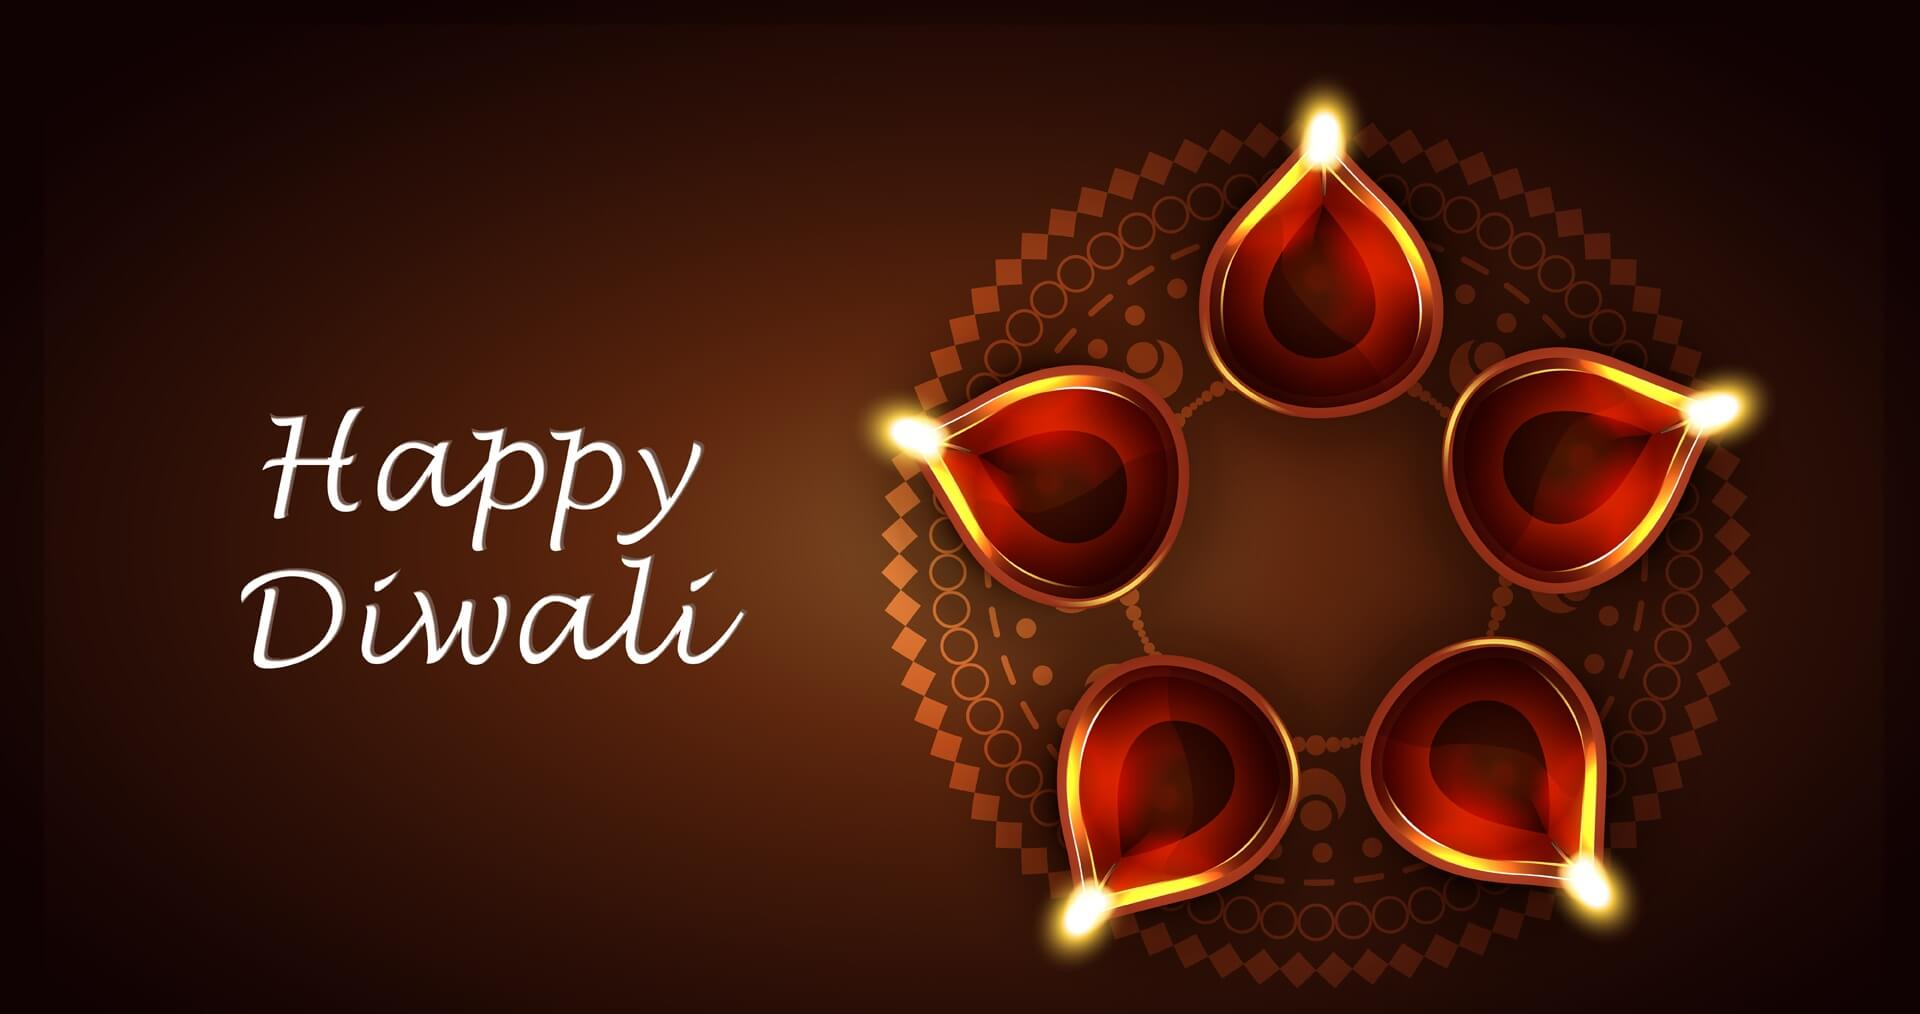 Happy diwali 2018 images wishes hd wallpapers messages happy diwali greeting card hd m4hsunfo Choice Image